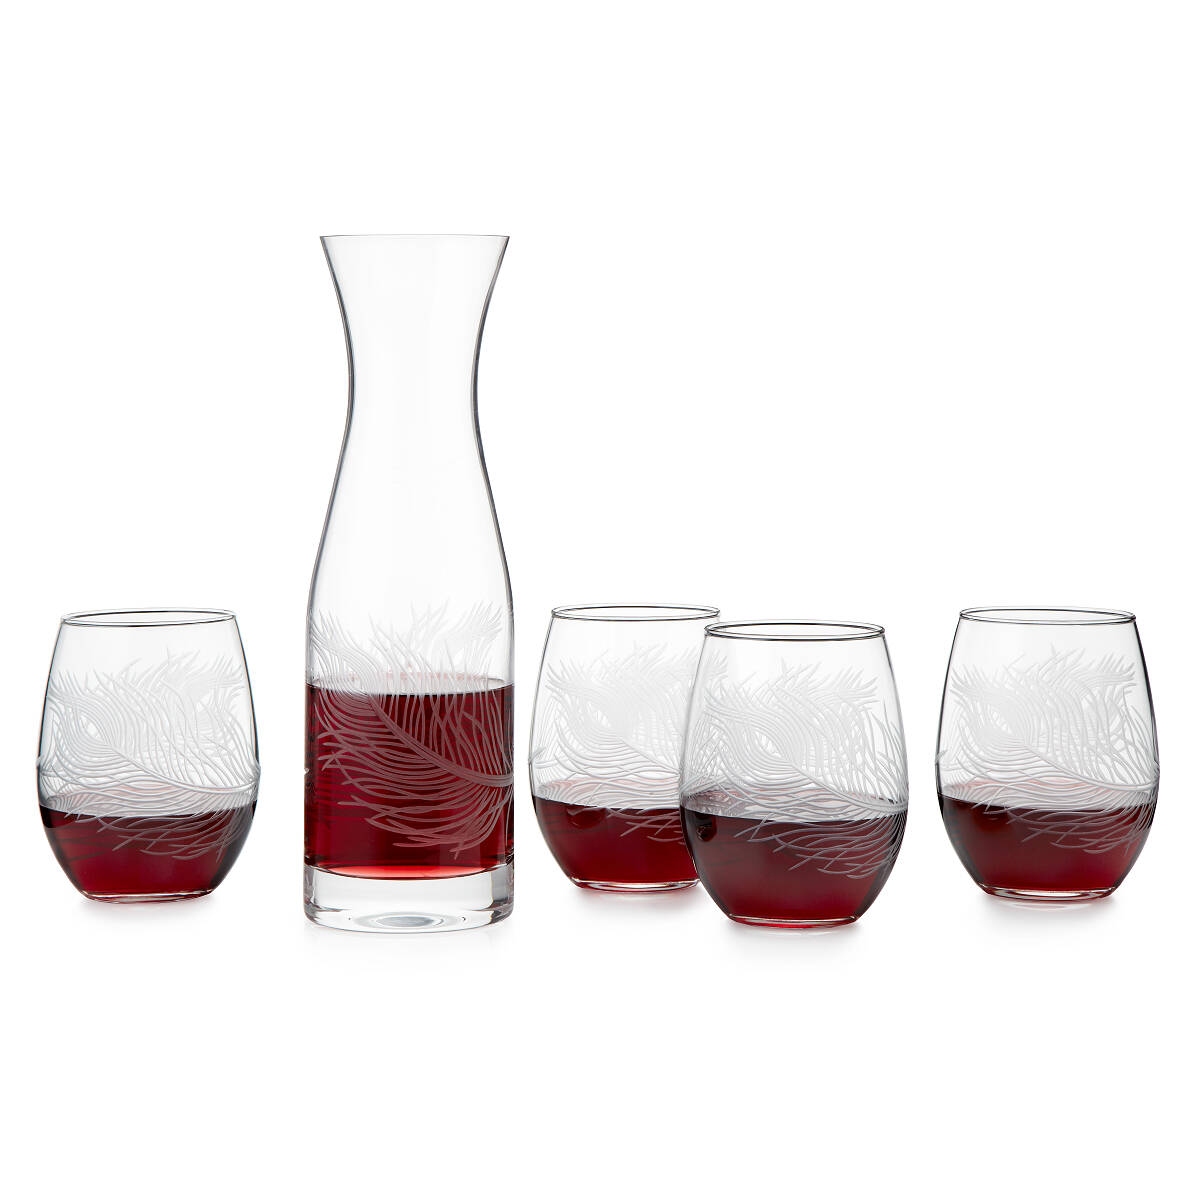 peacock stemless wine glasses and carafe 2 thumbnail